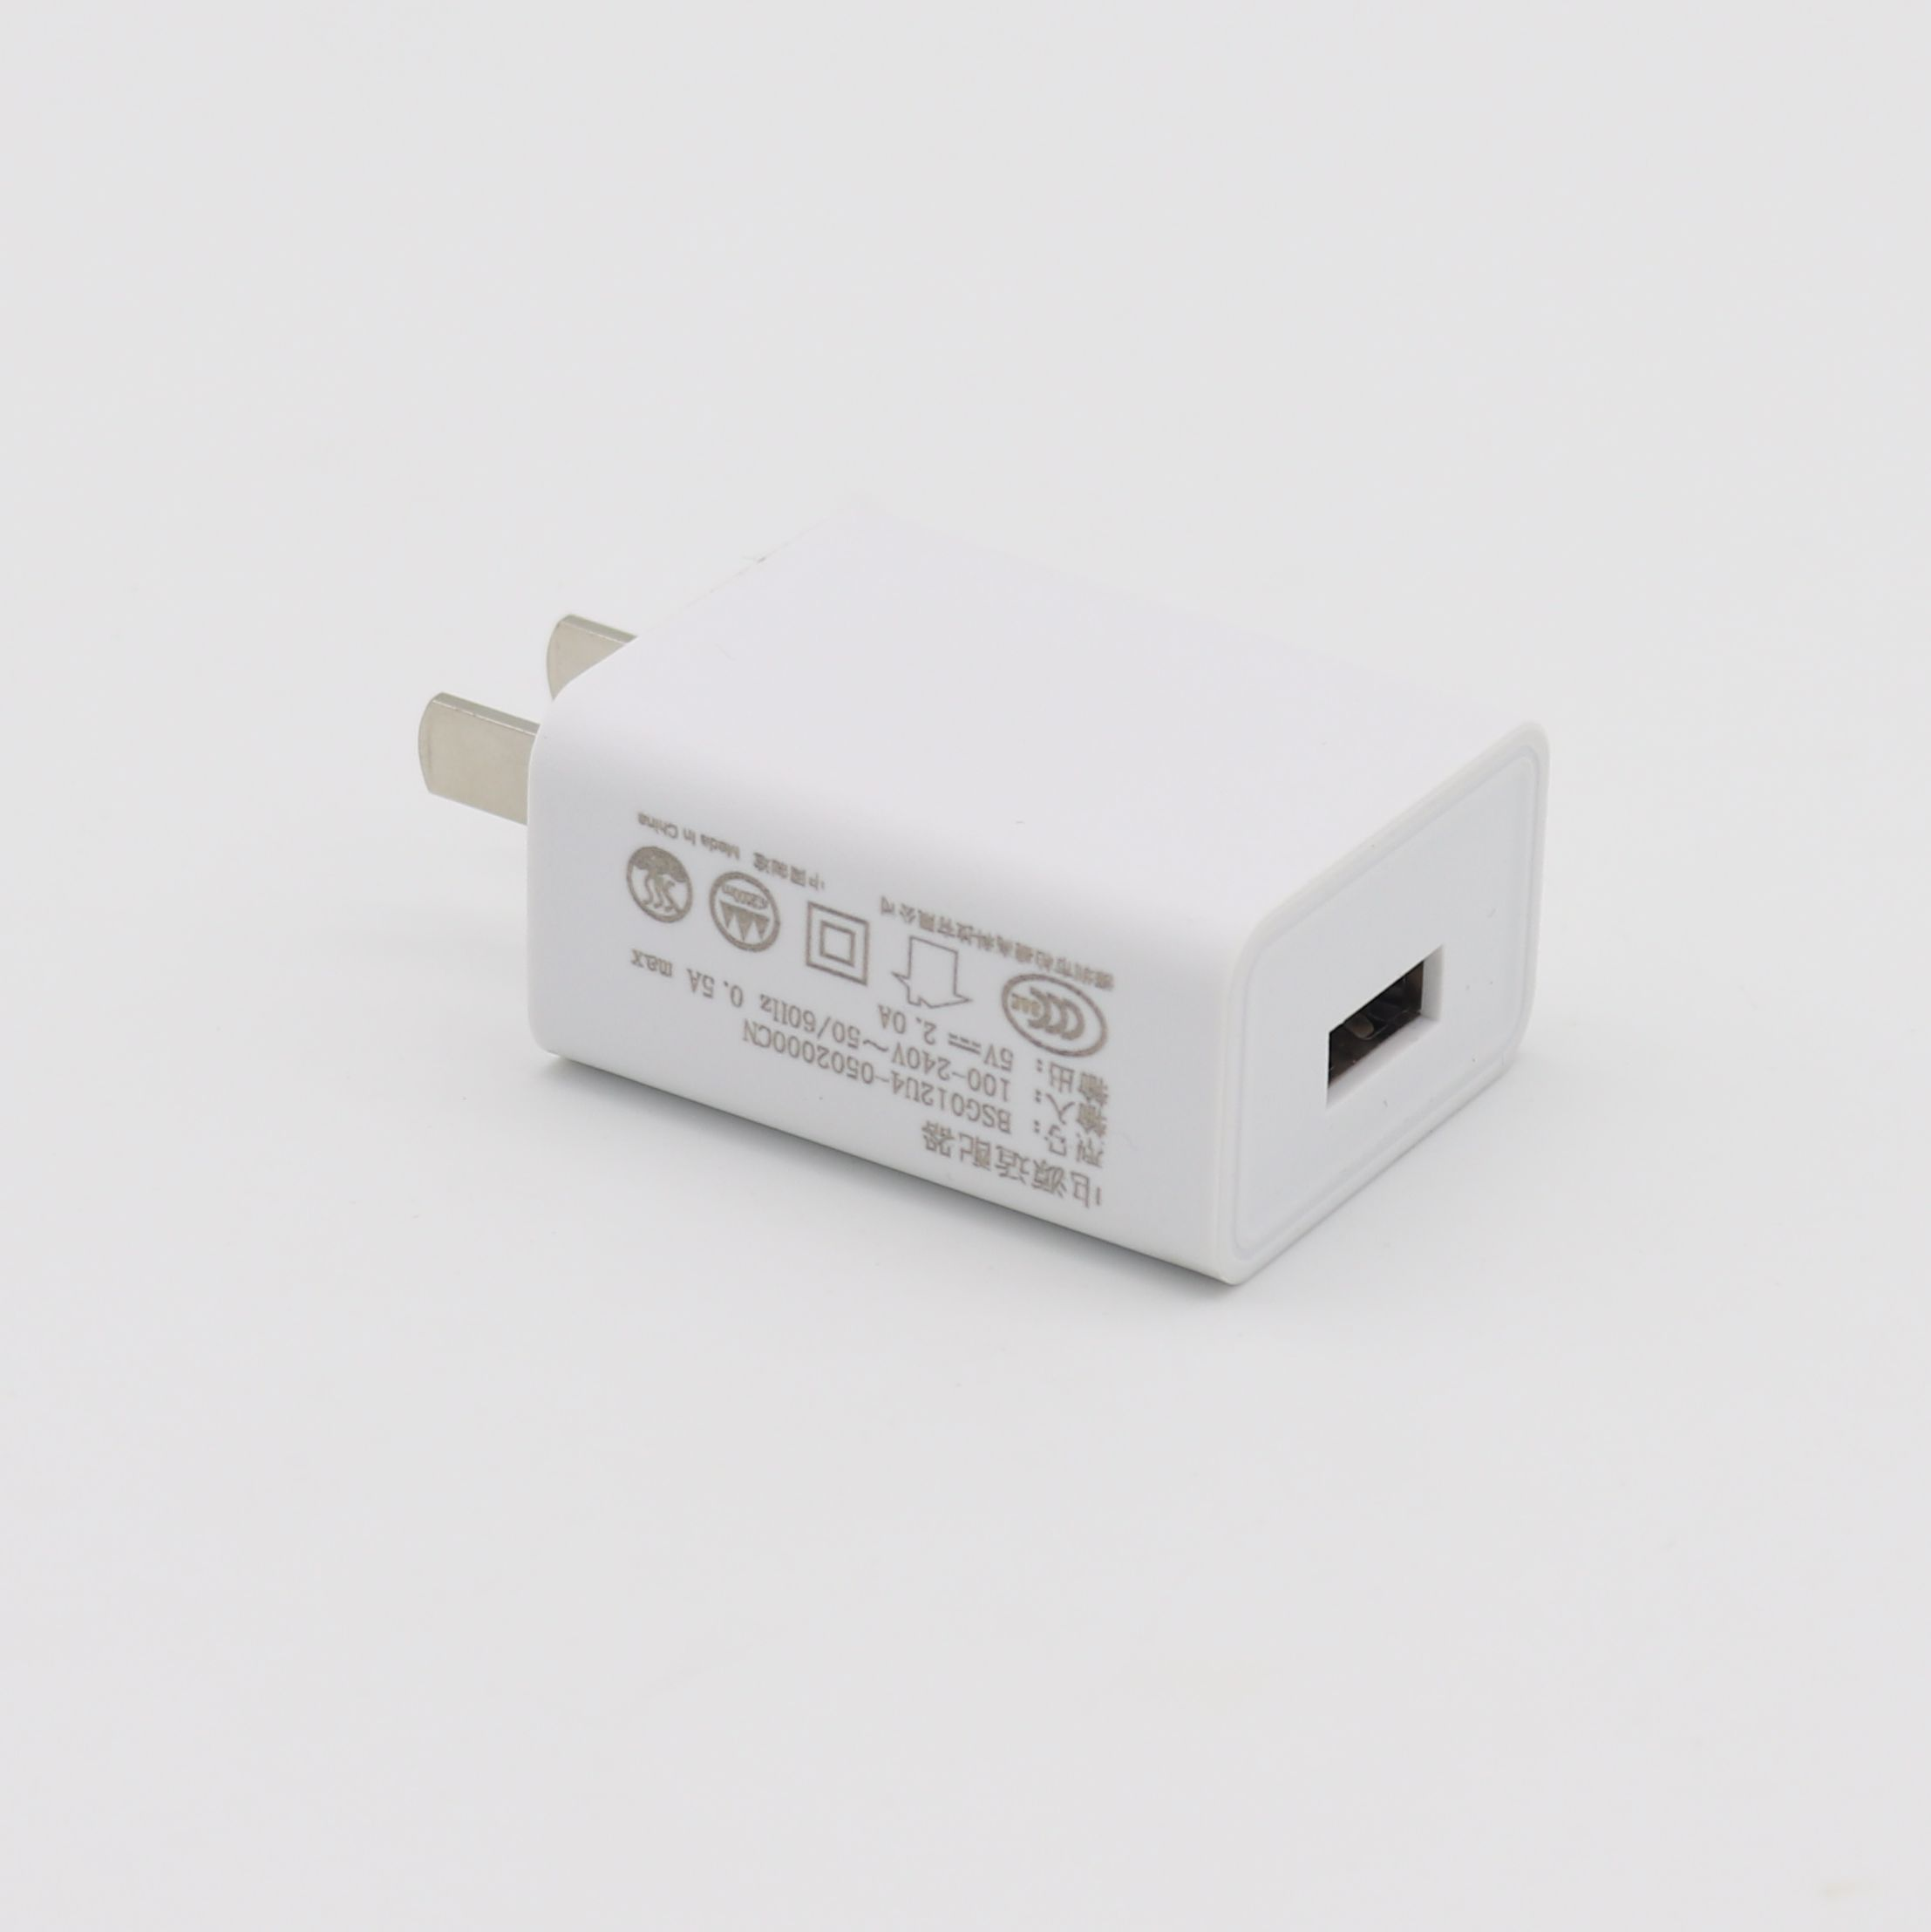 Model Baru Warna Putih Mini 5V2A USB Charger Adapter 10 W 5 V 2A AC DC Power Supply dengan CCC ROHS